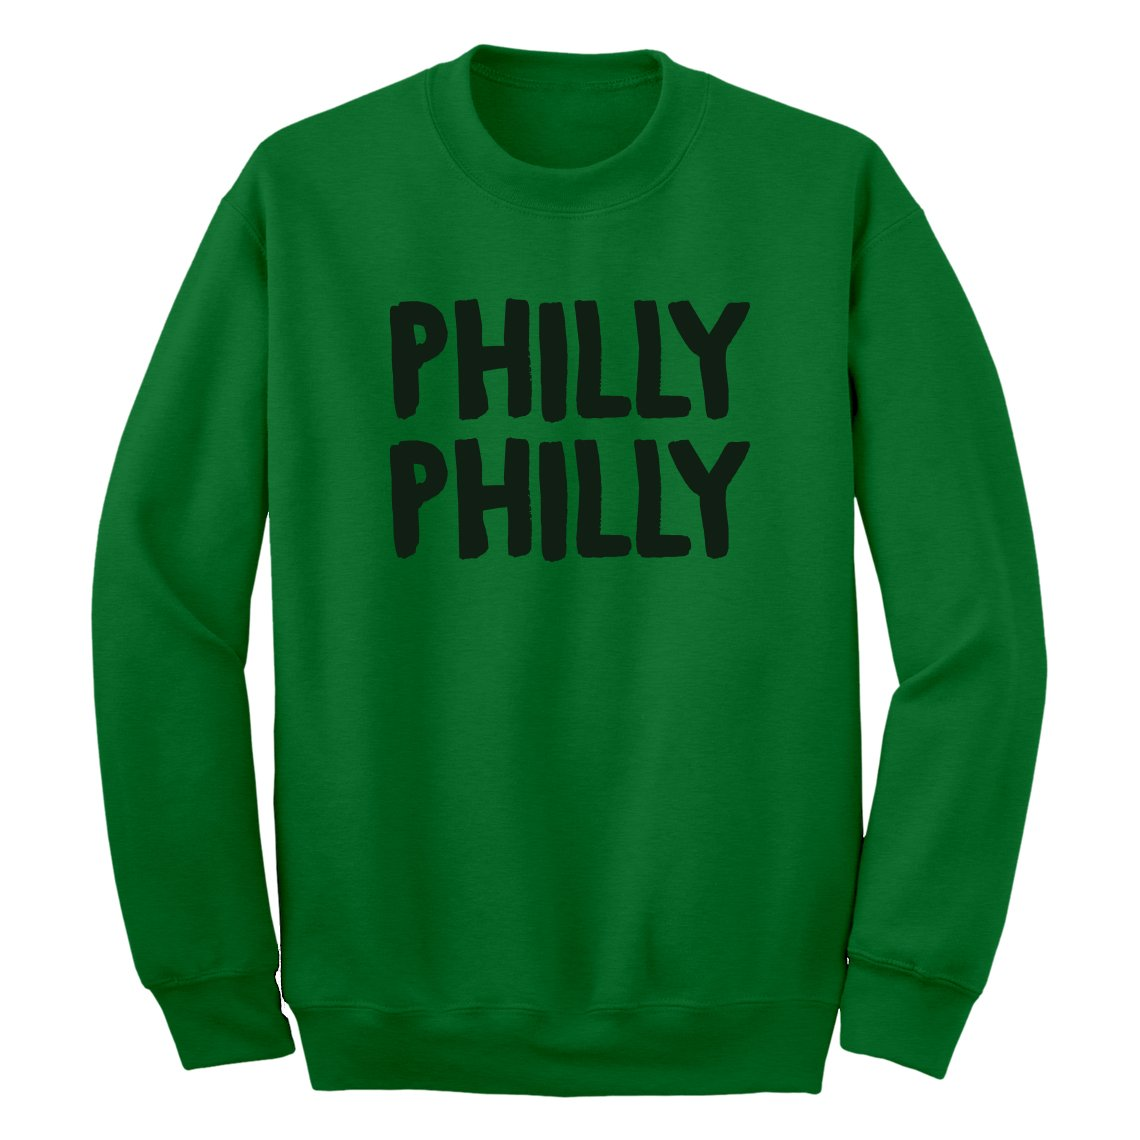 Indica Plateau Philly Philly Unisex Adult Sweatshirt 3066-C